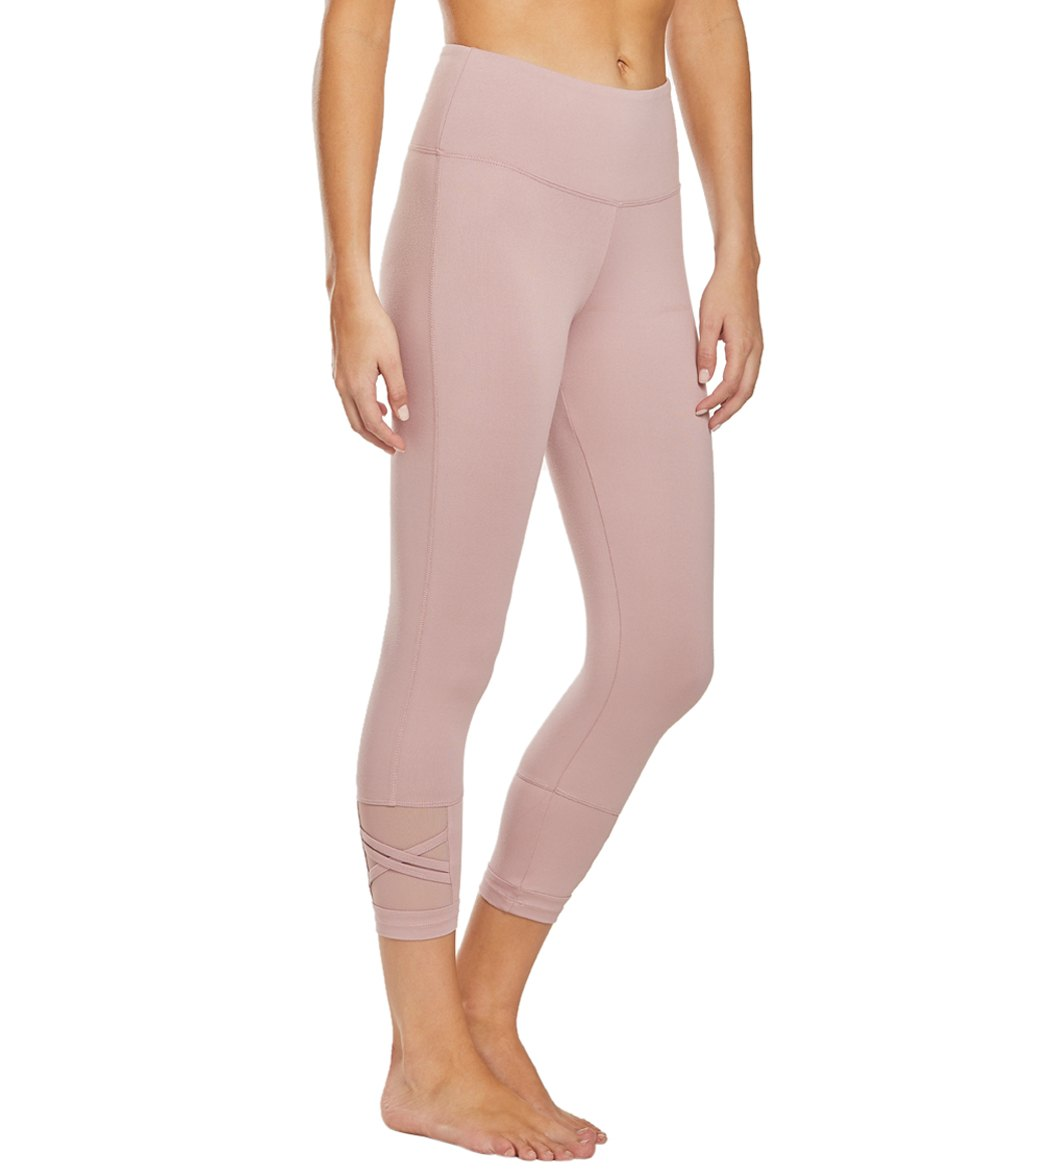 Balance Collection Ellie Yoga Capri Pants - Woodrose Cotton